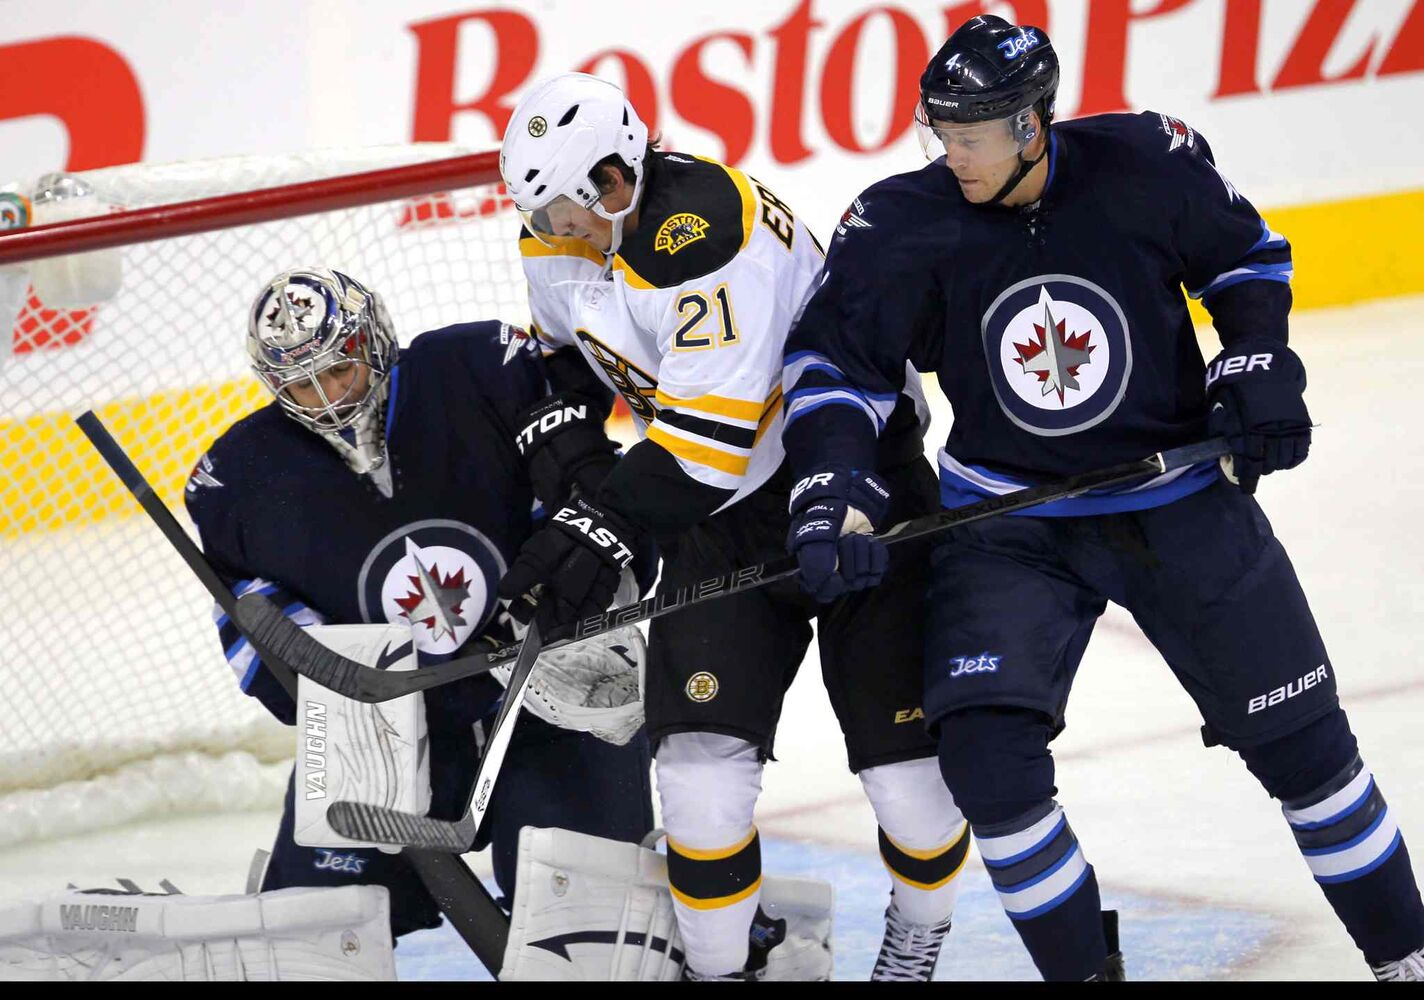 Loui Eriksson of the Boston Bruins and Paul Postma of the Winnipeg Jets jostle in front of Ondrej Pavelec in the first period.